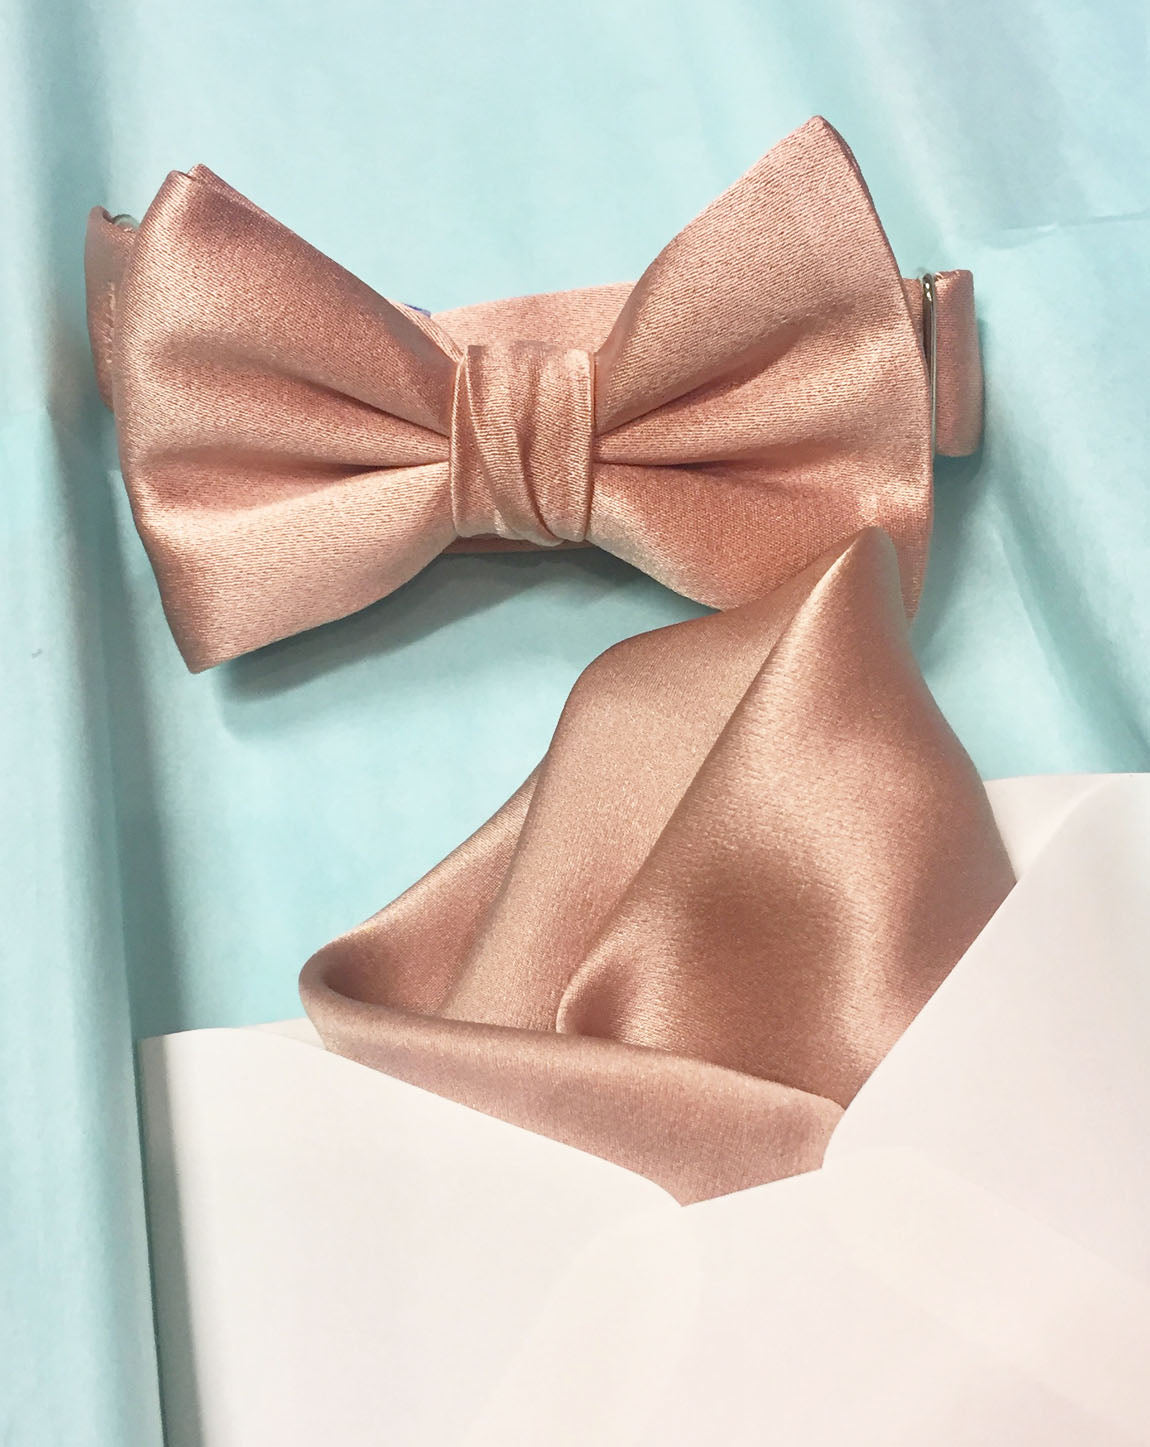 330d11b94829b We stand behind our rose gold bow tie and pocket square, but if you are in  any way unsatisfied, we offer easy returns.